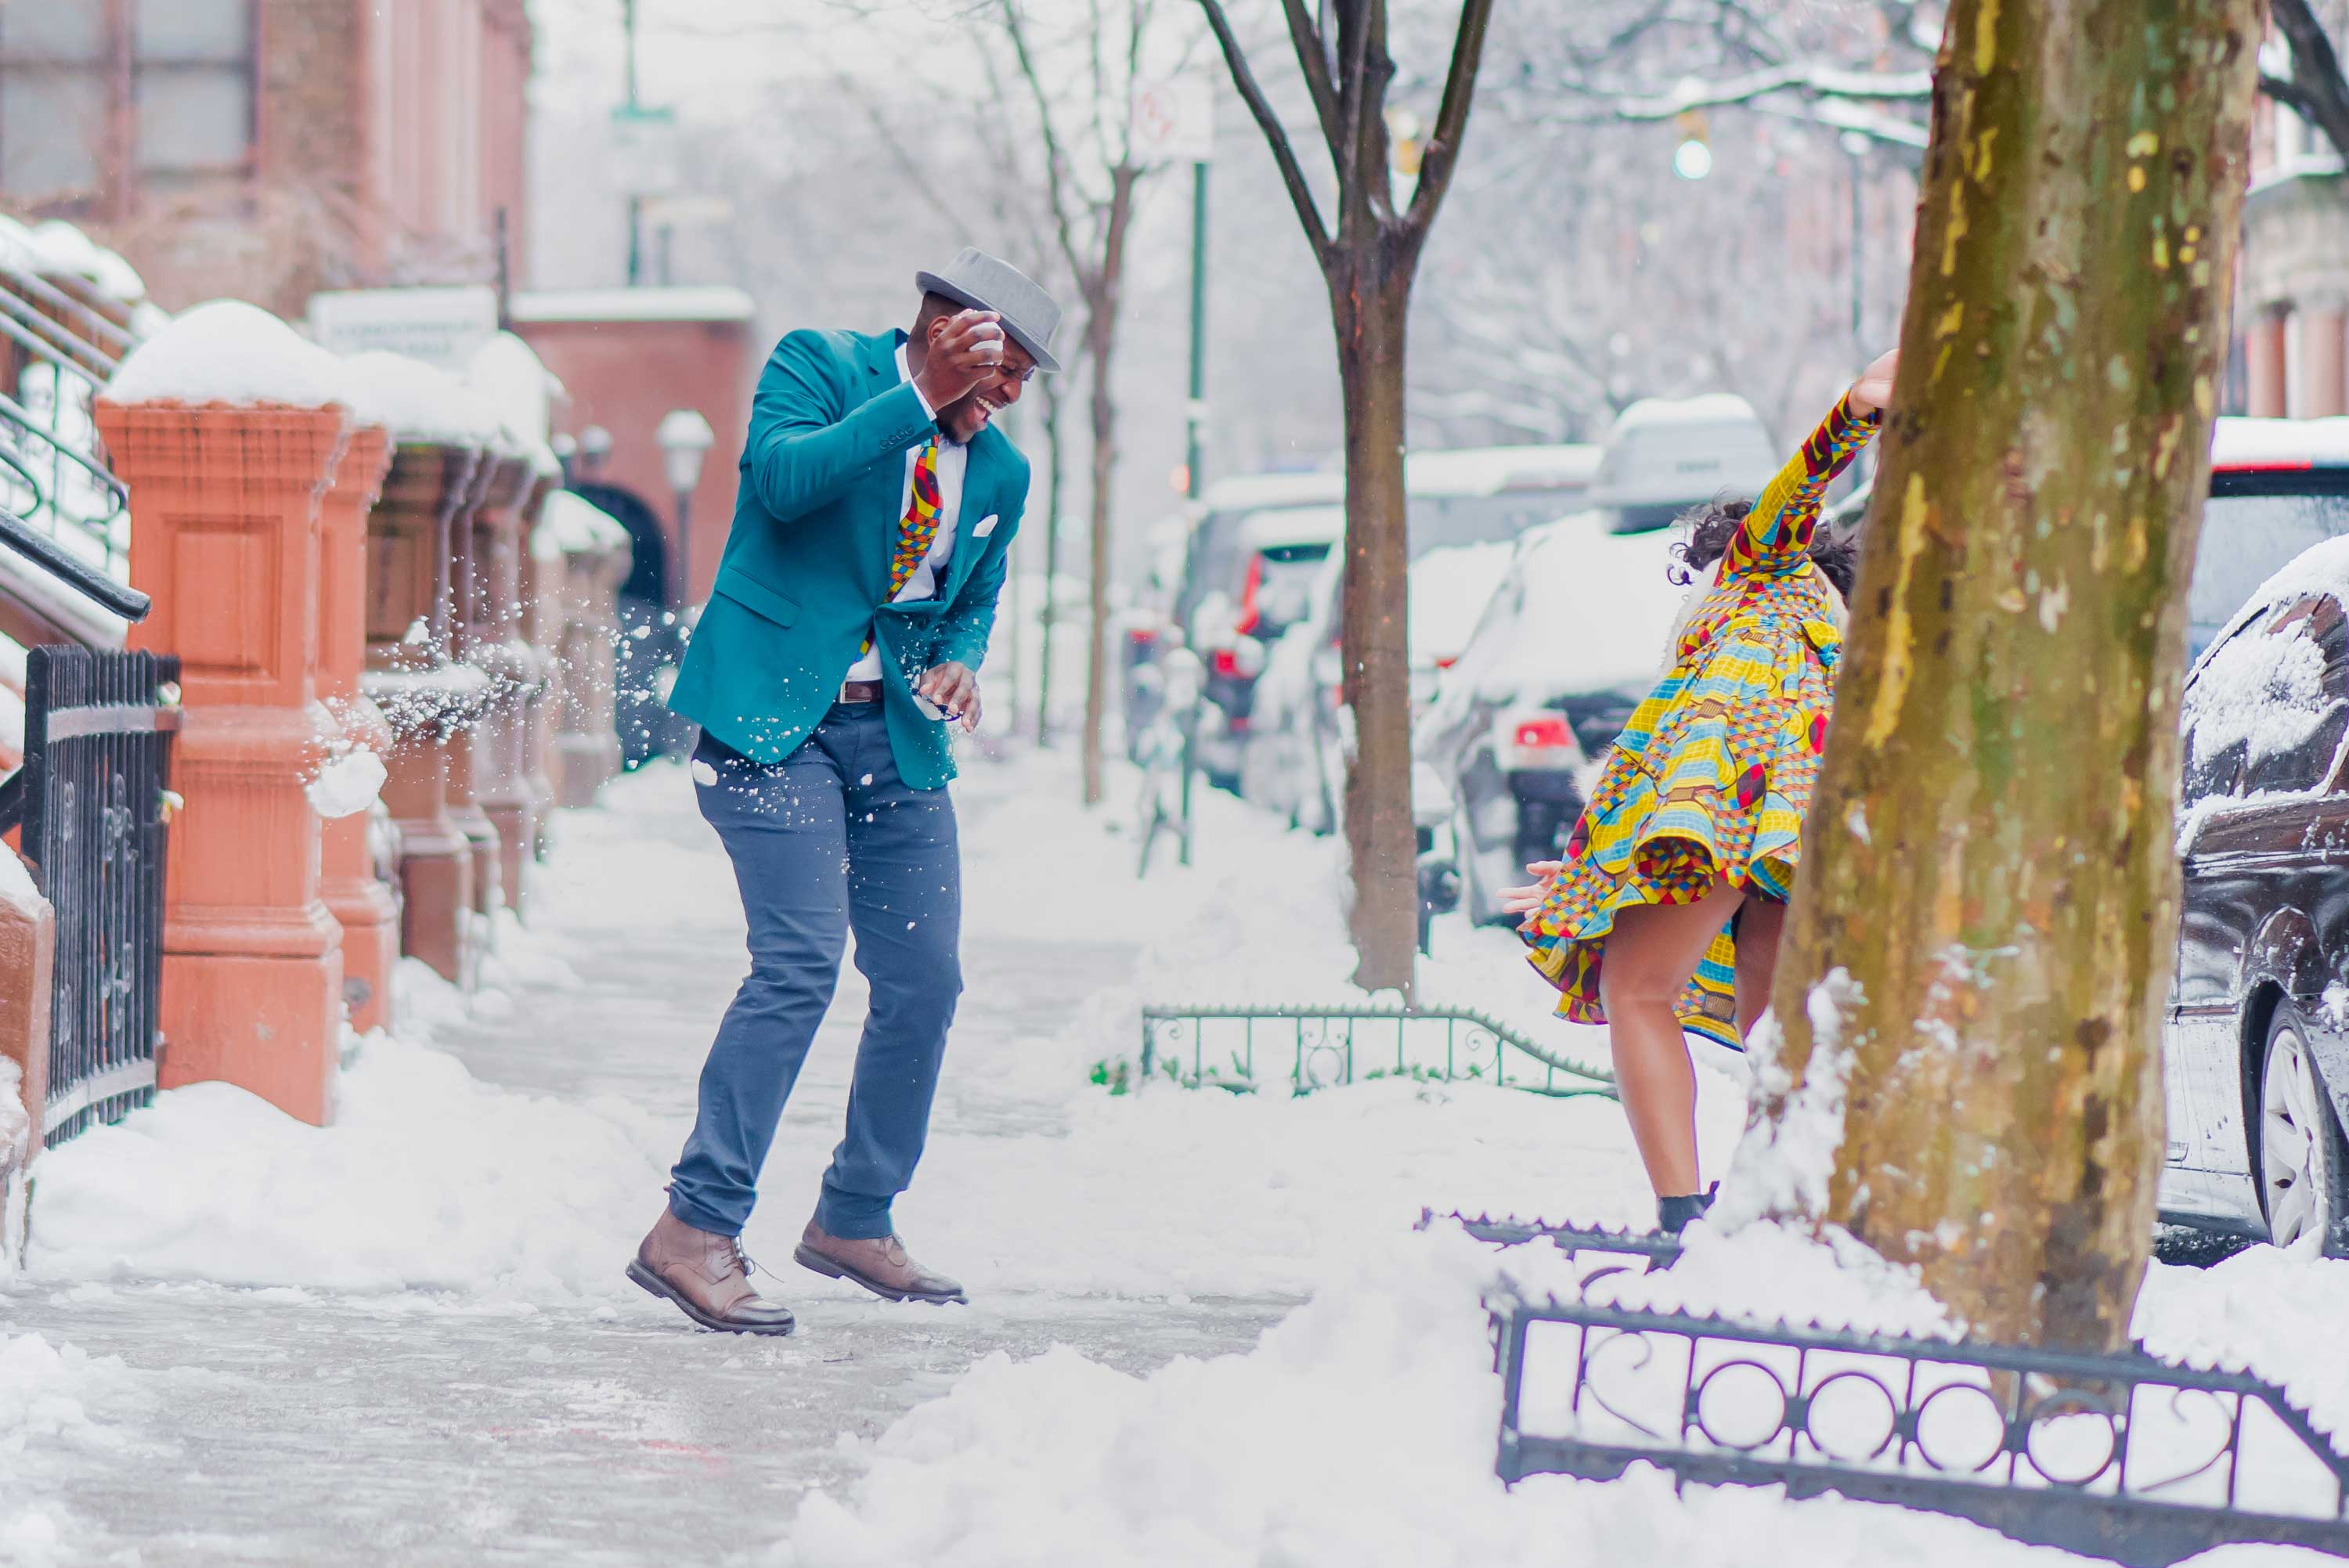 Groom to be laughing throwing snowball at bride to be engaged engagement session snowy new york city